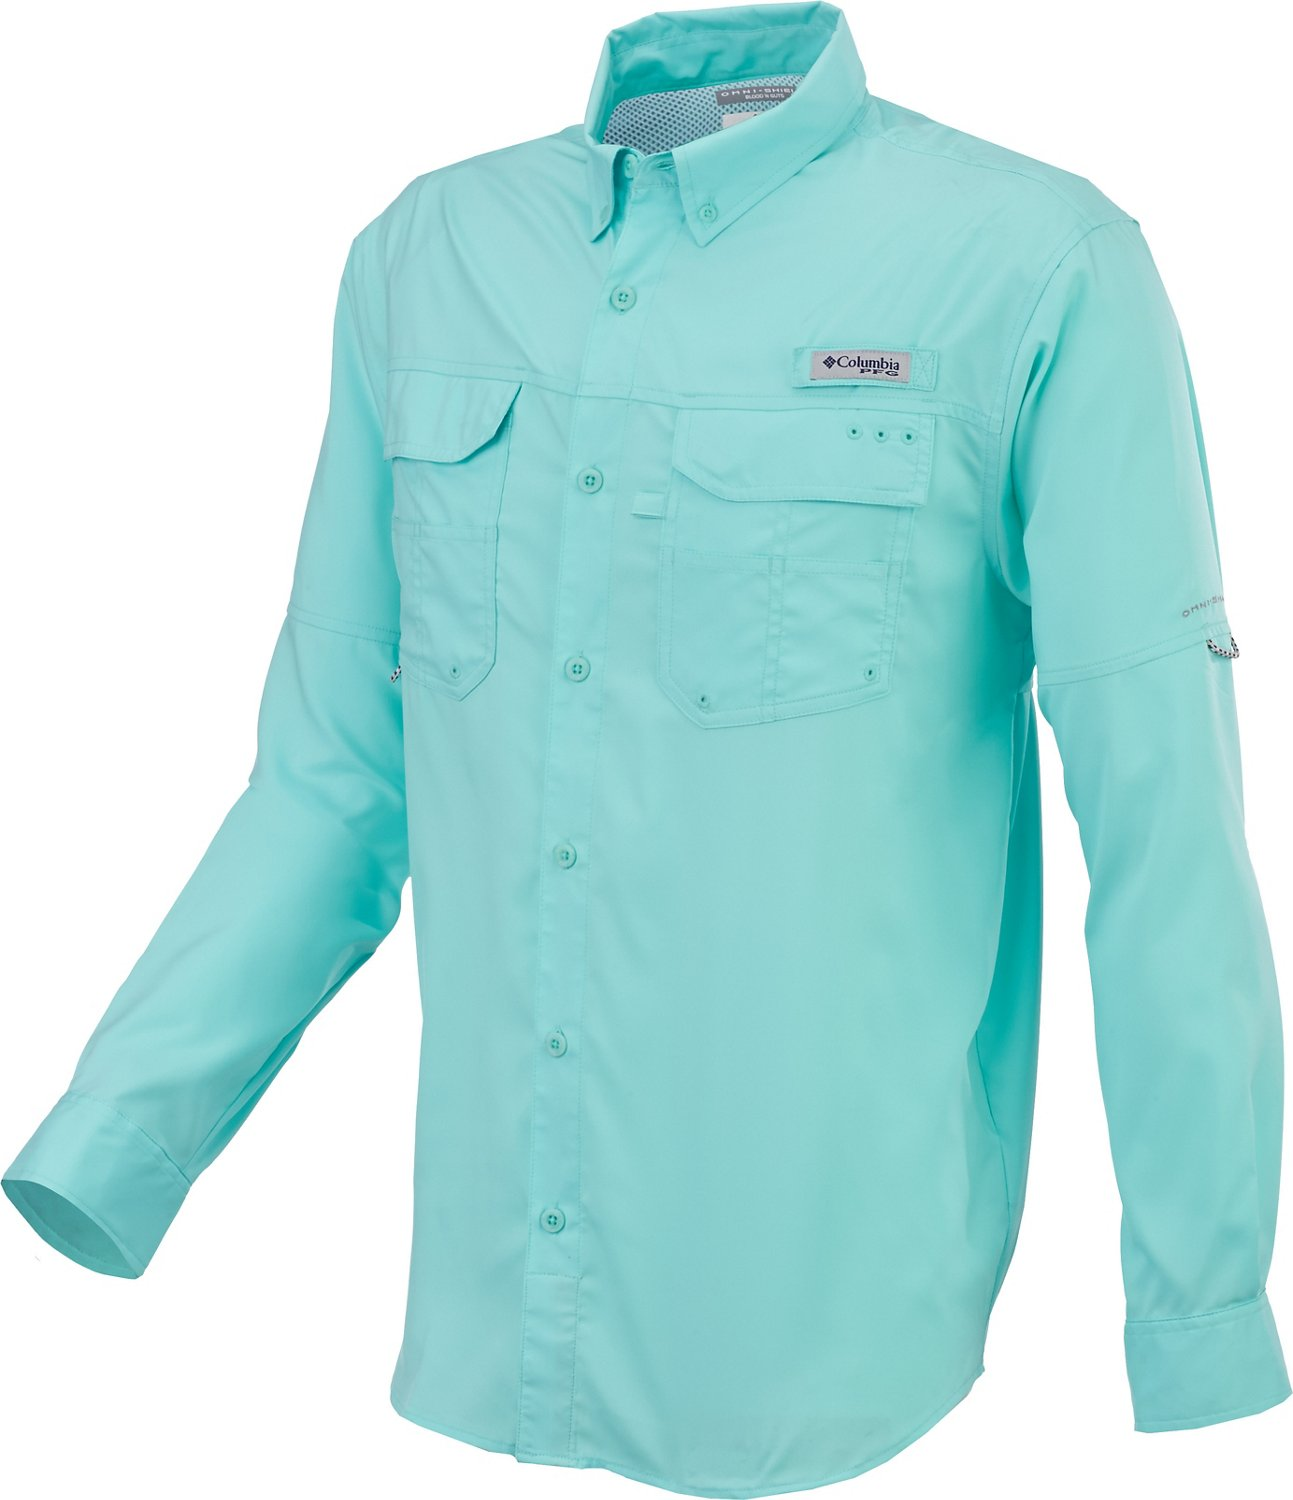 bcdde788b22 Columbia Sportswear Men's Blood and Guts III Long Sleeve Woven Fishing Shirt  | Academy